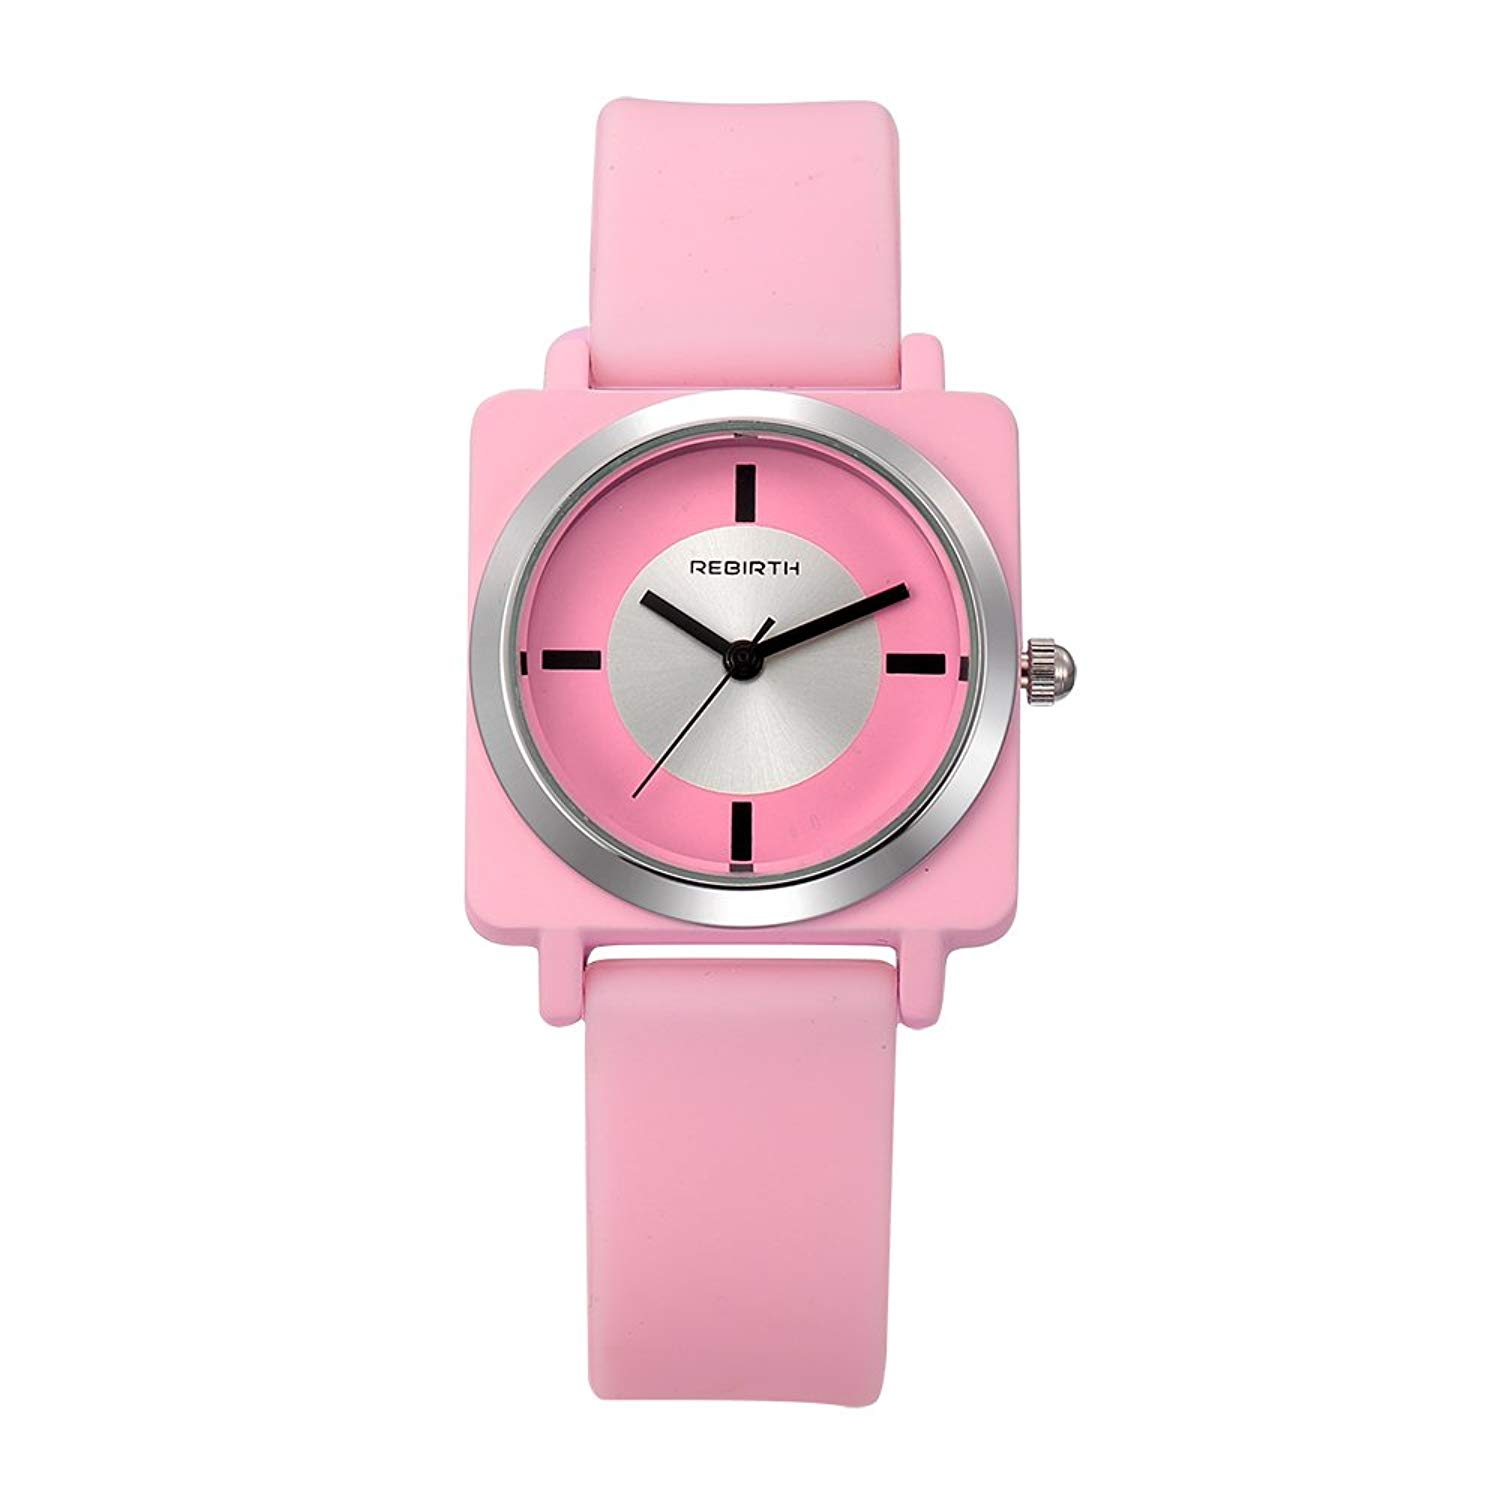 Bosymart Square Face Silicone Strap Quartz Women Girl Jelly Wrist Watch